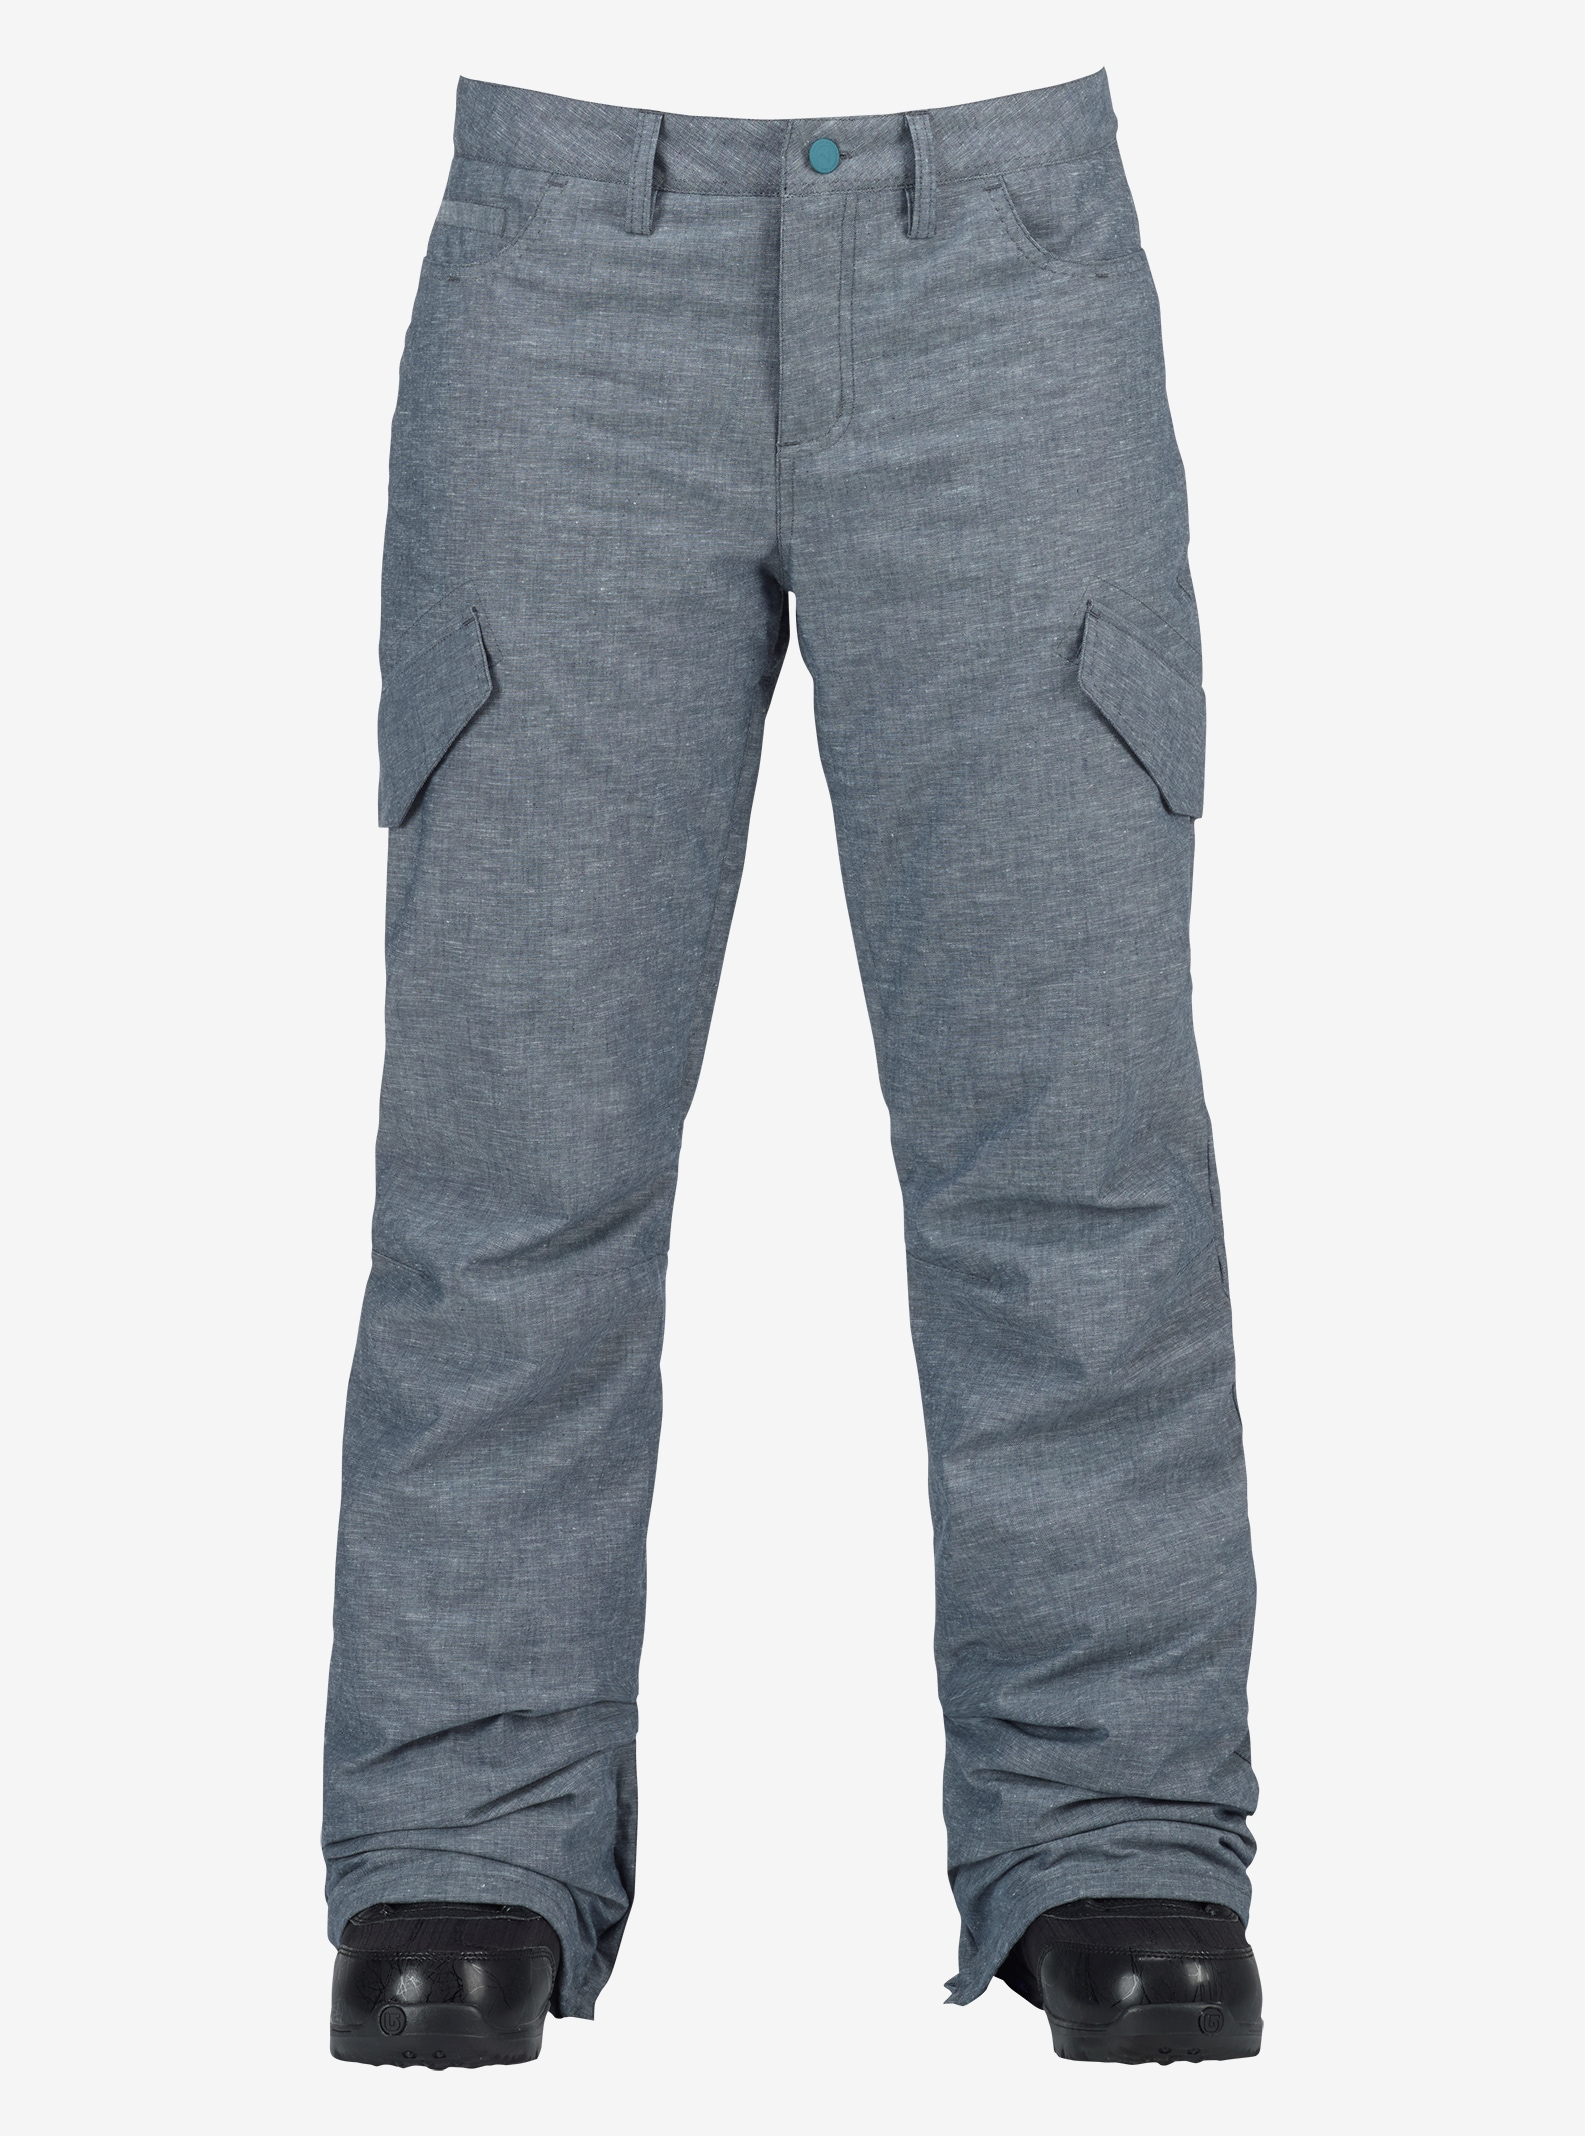 Women's Burton Fly Pant shown in Chambray